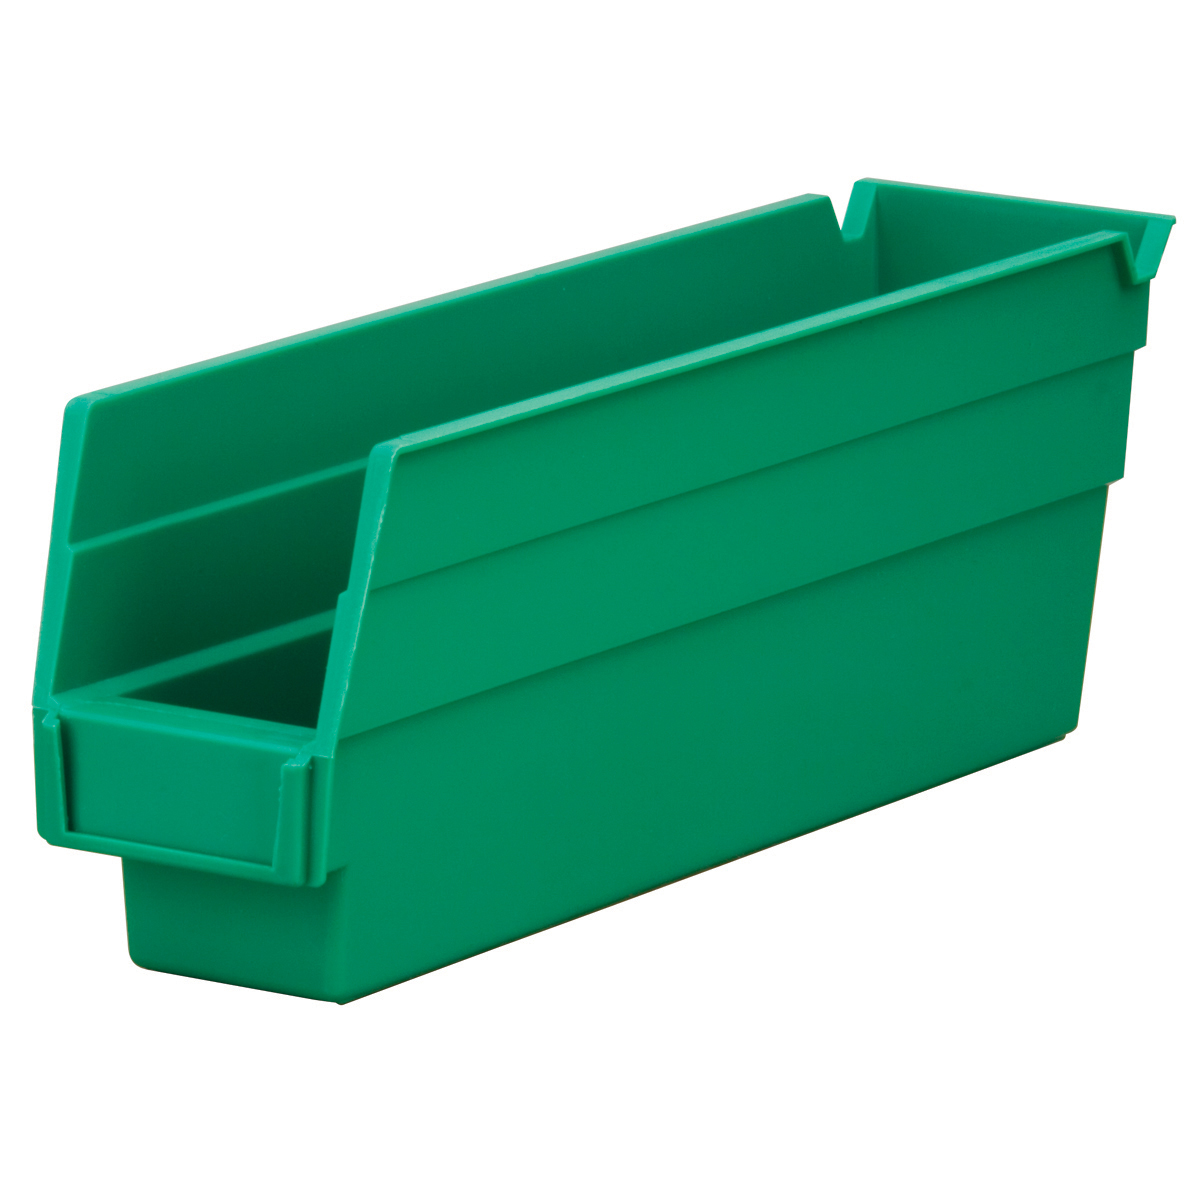 Shelf Bin 11-5/8 x 2-3/4 x 4, Green (30110GREEN).  This item sold in carton quantities of 24.